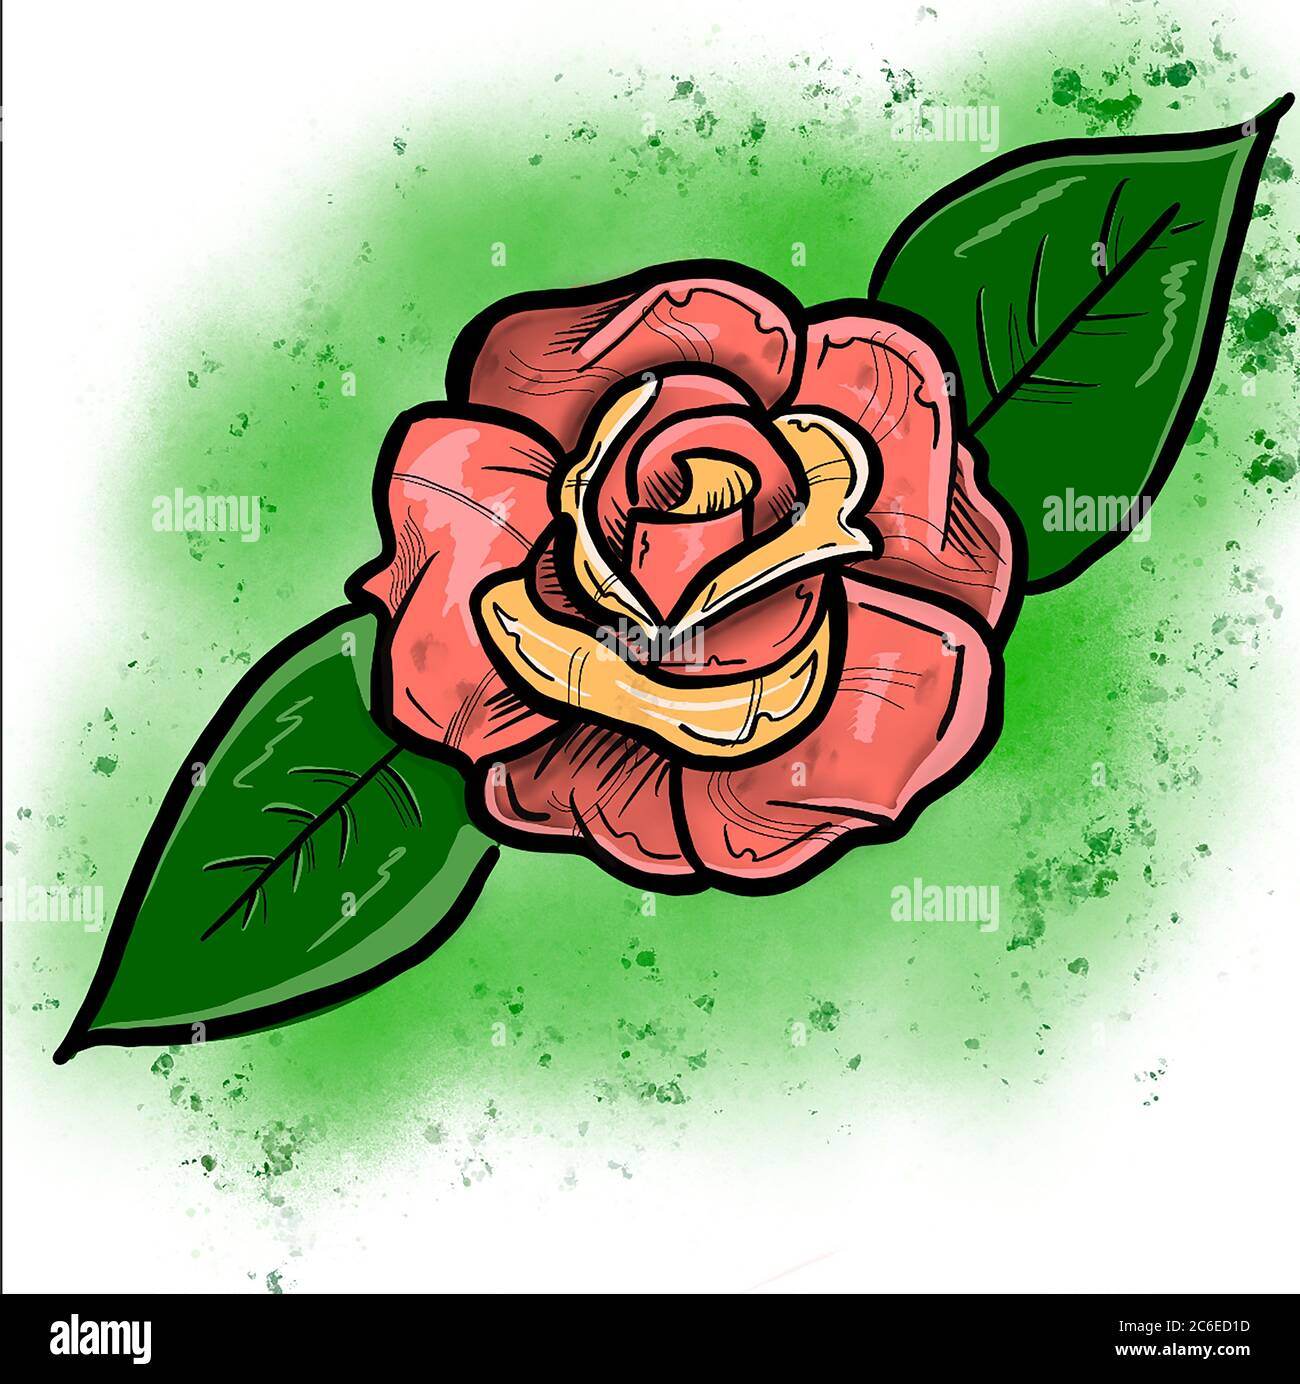 Rose Tattoo Cartoon High Resolution Stock Photography And Images Alamy